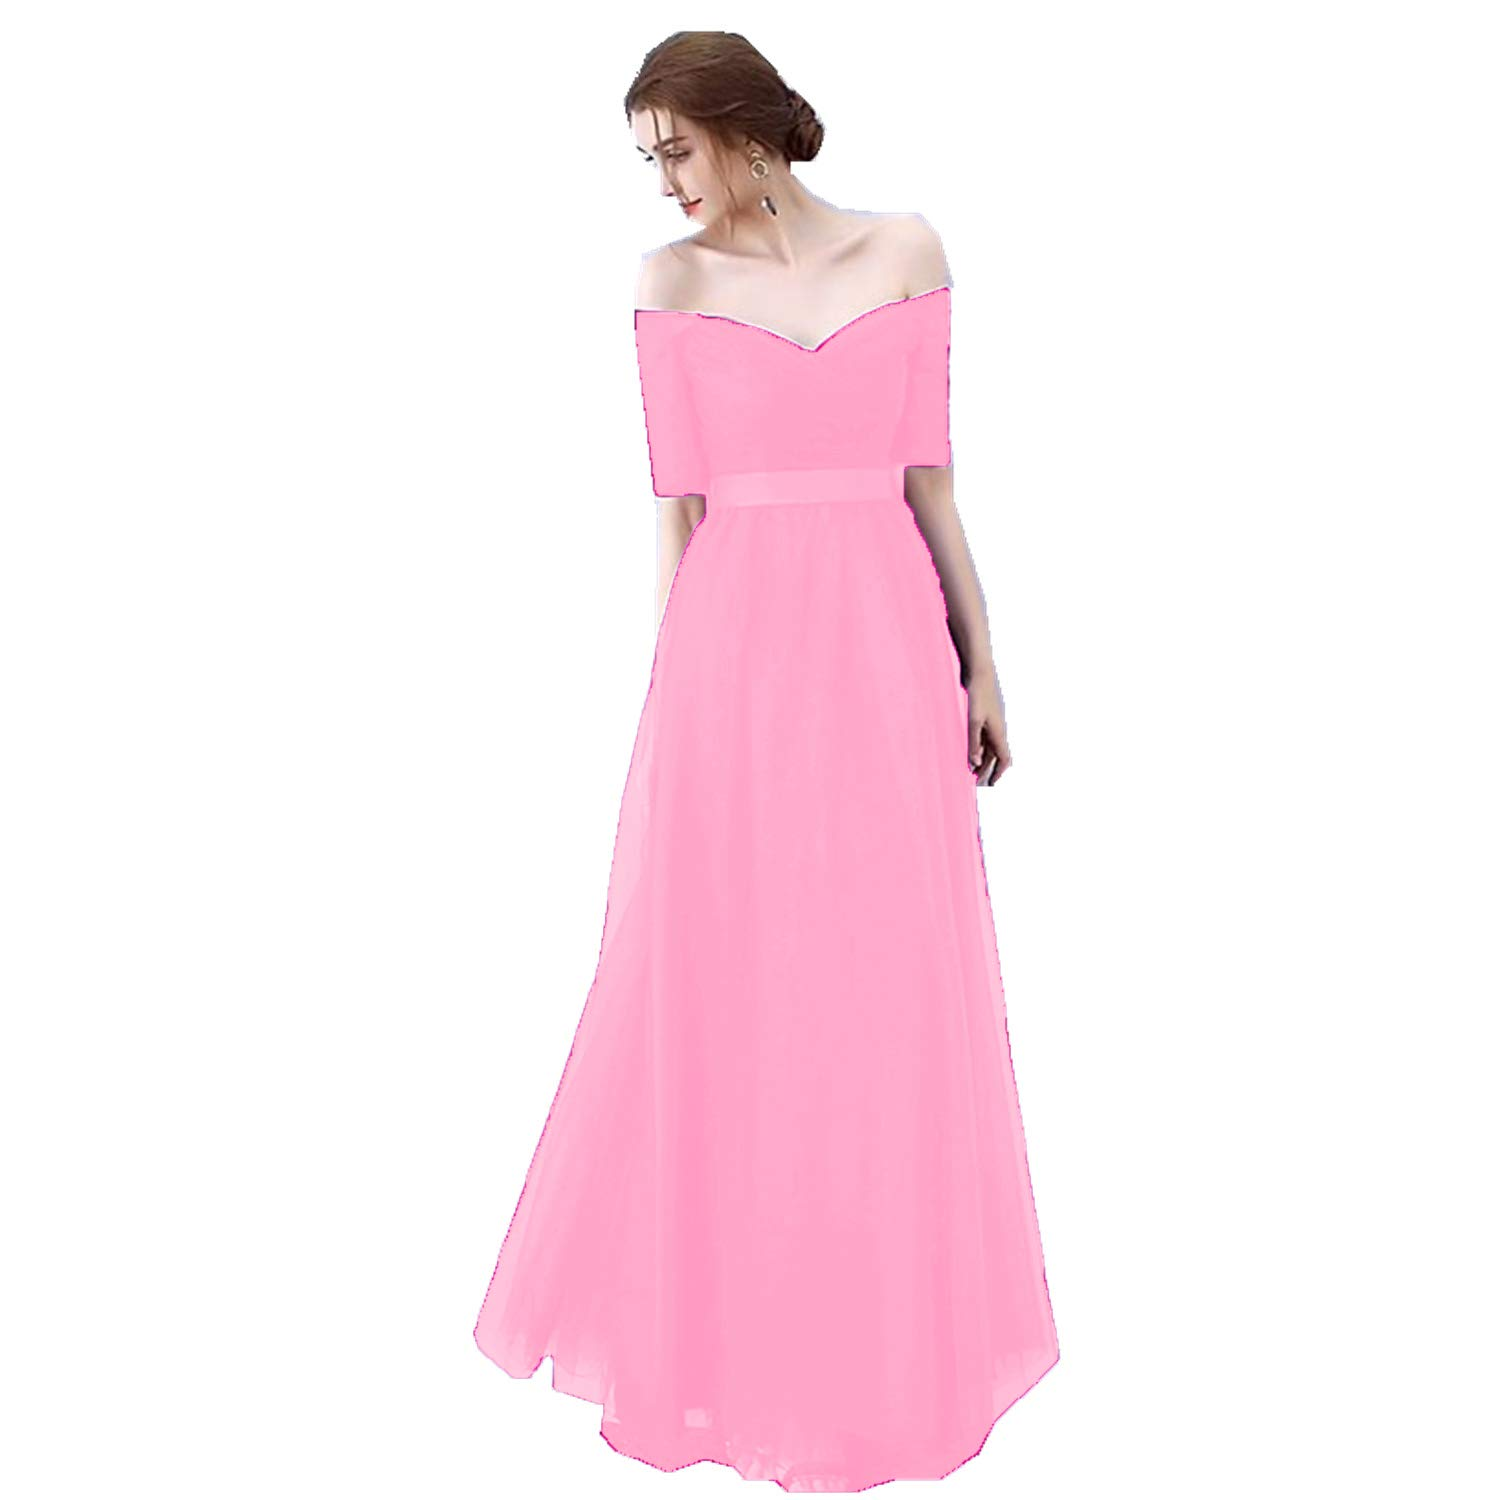 bluesh Ruiyuhong Women's VNeck Off The Shoulder Bridesmaid Dresses Long Tulle Wedding Party Gown